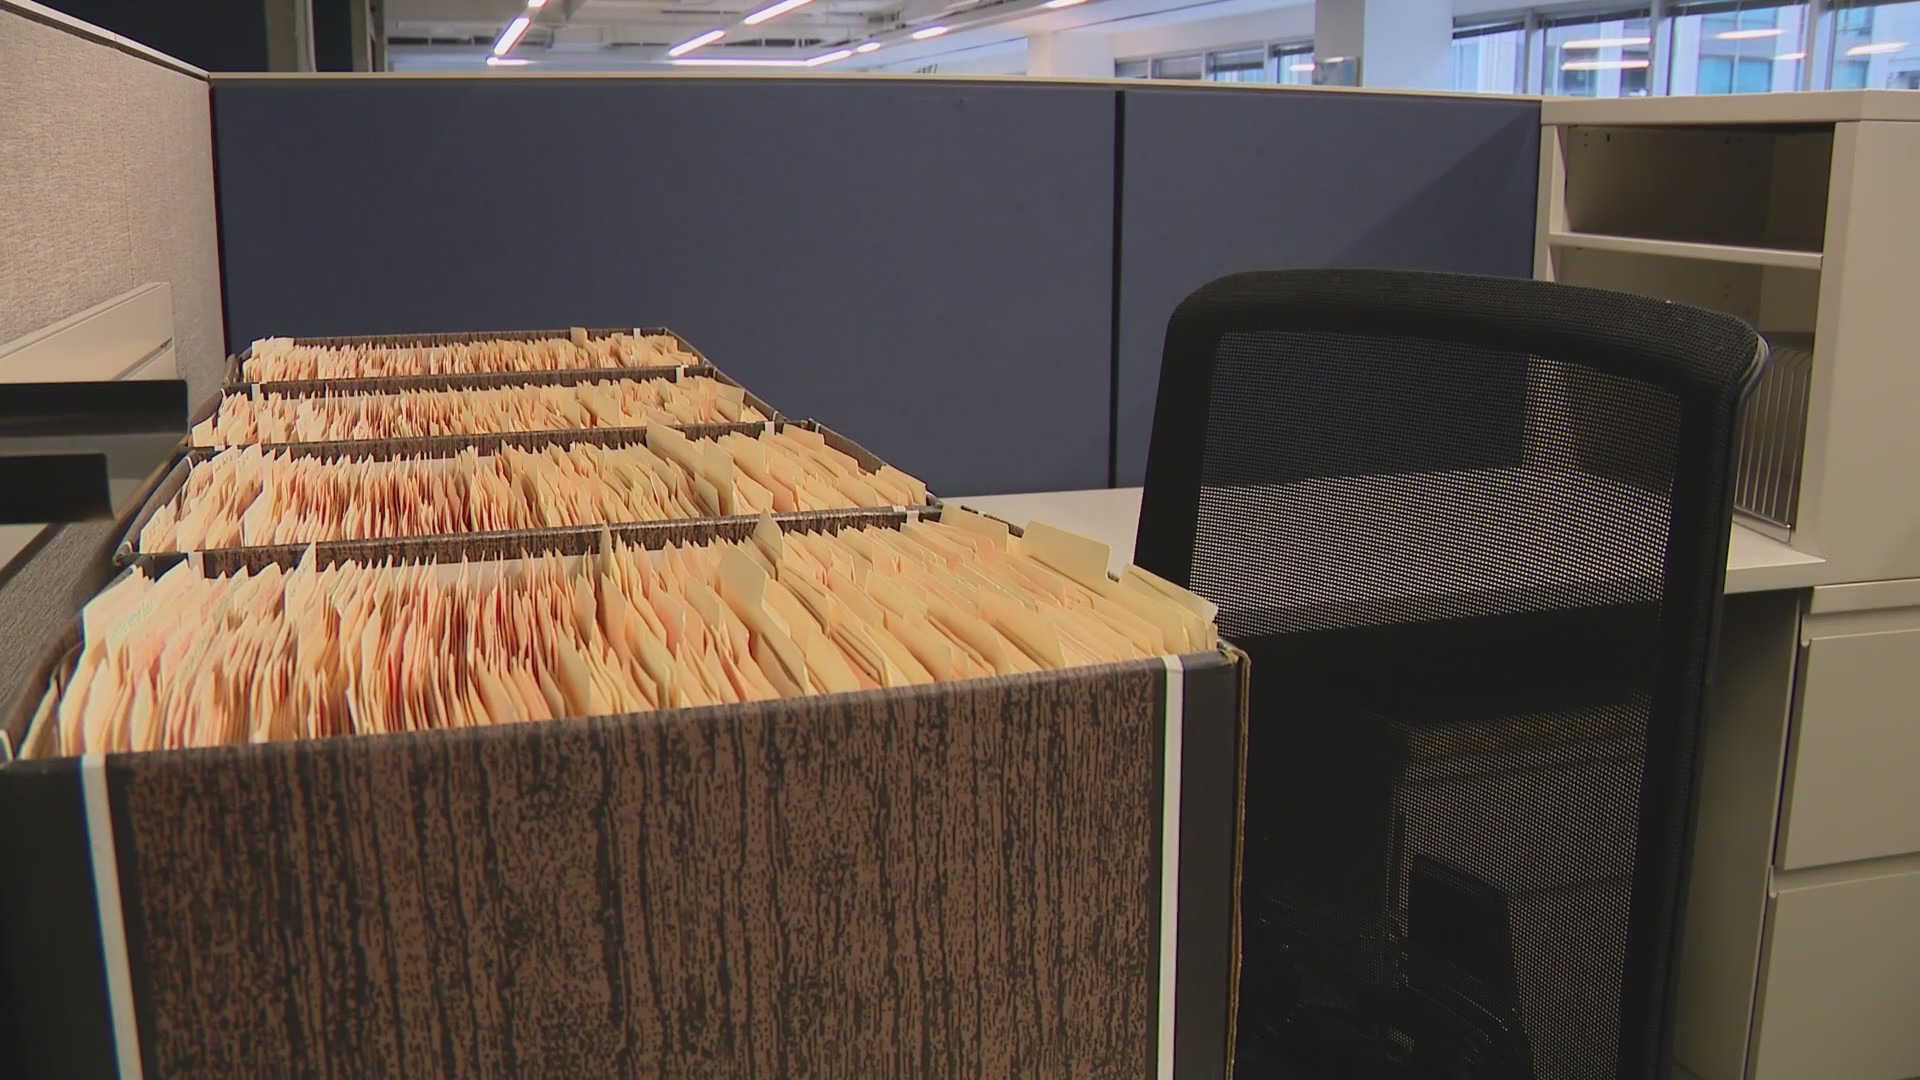 wgntv.com - Julie Unruh - Downtown office vacancies remain at record high